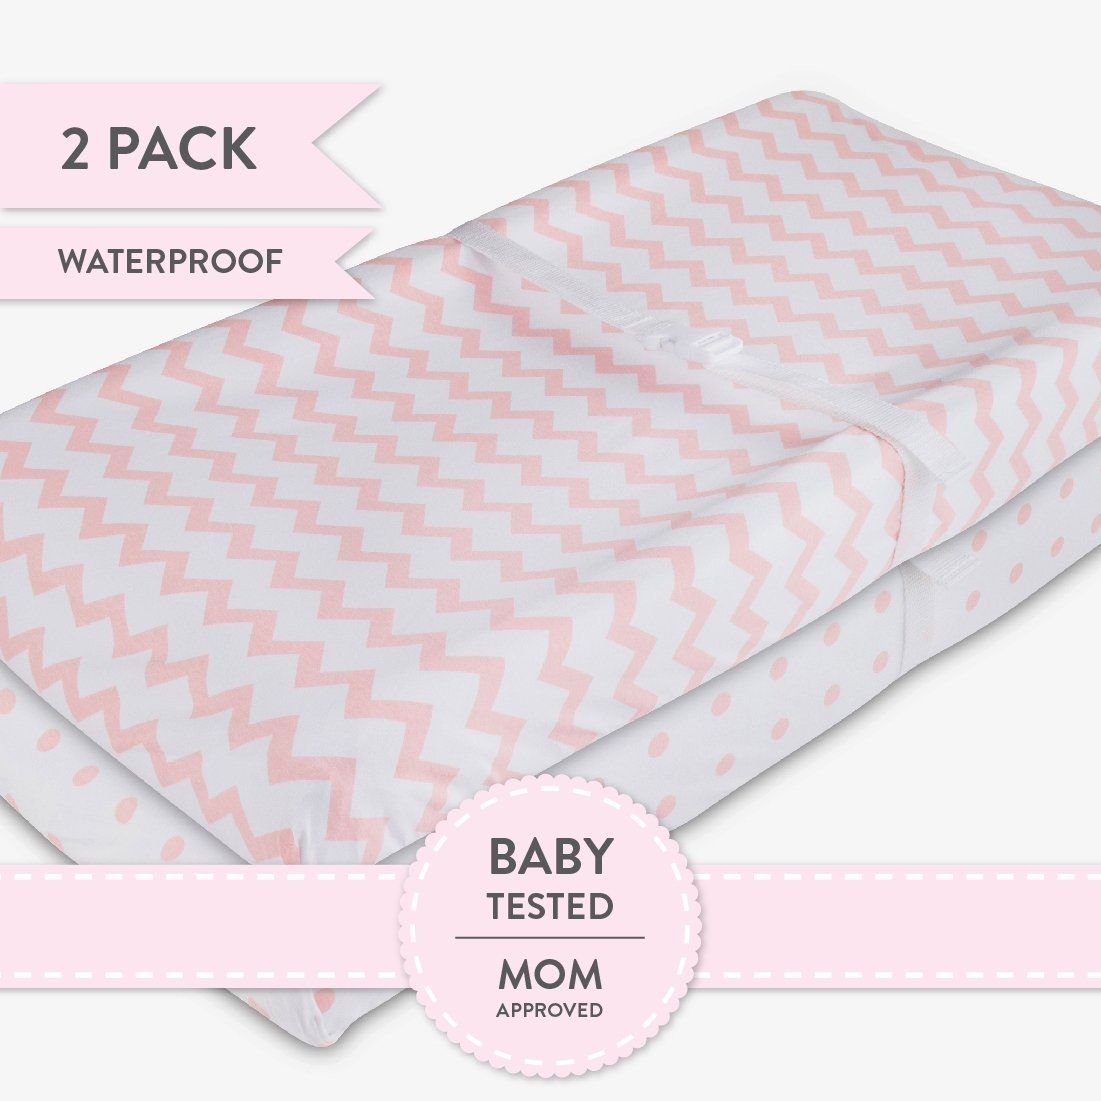 225 & Waterproof Changing Pad Cover | Cradle Sheet Pink Dots and ...